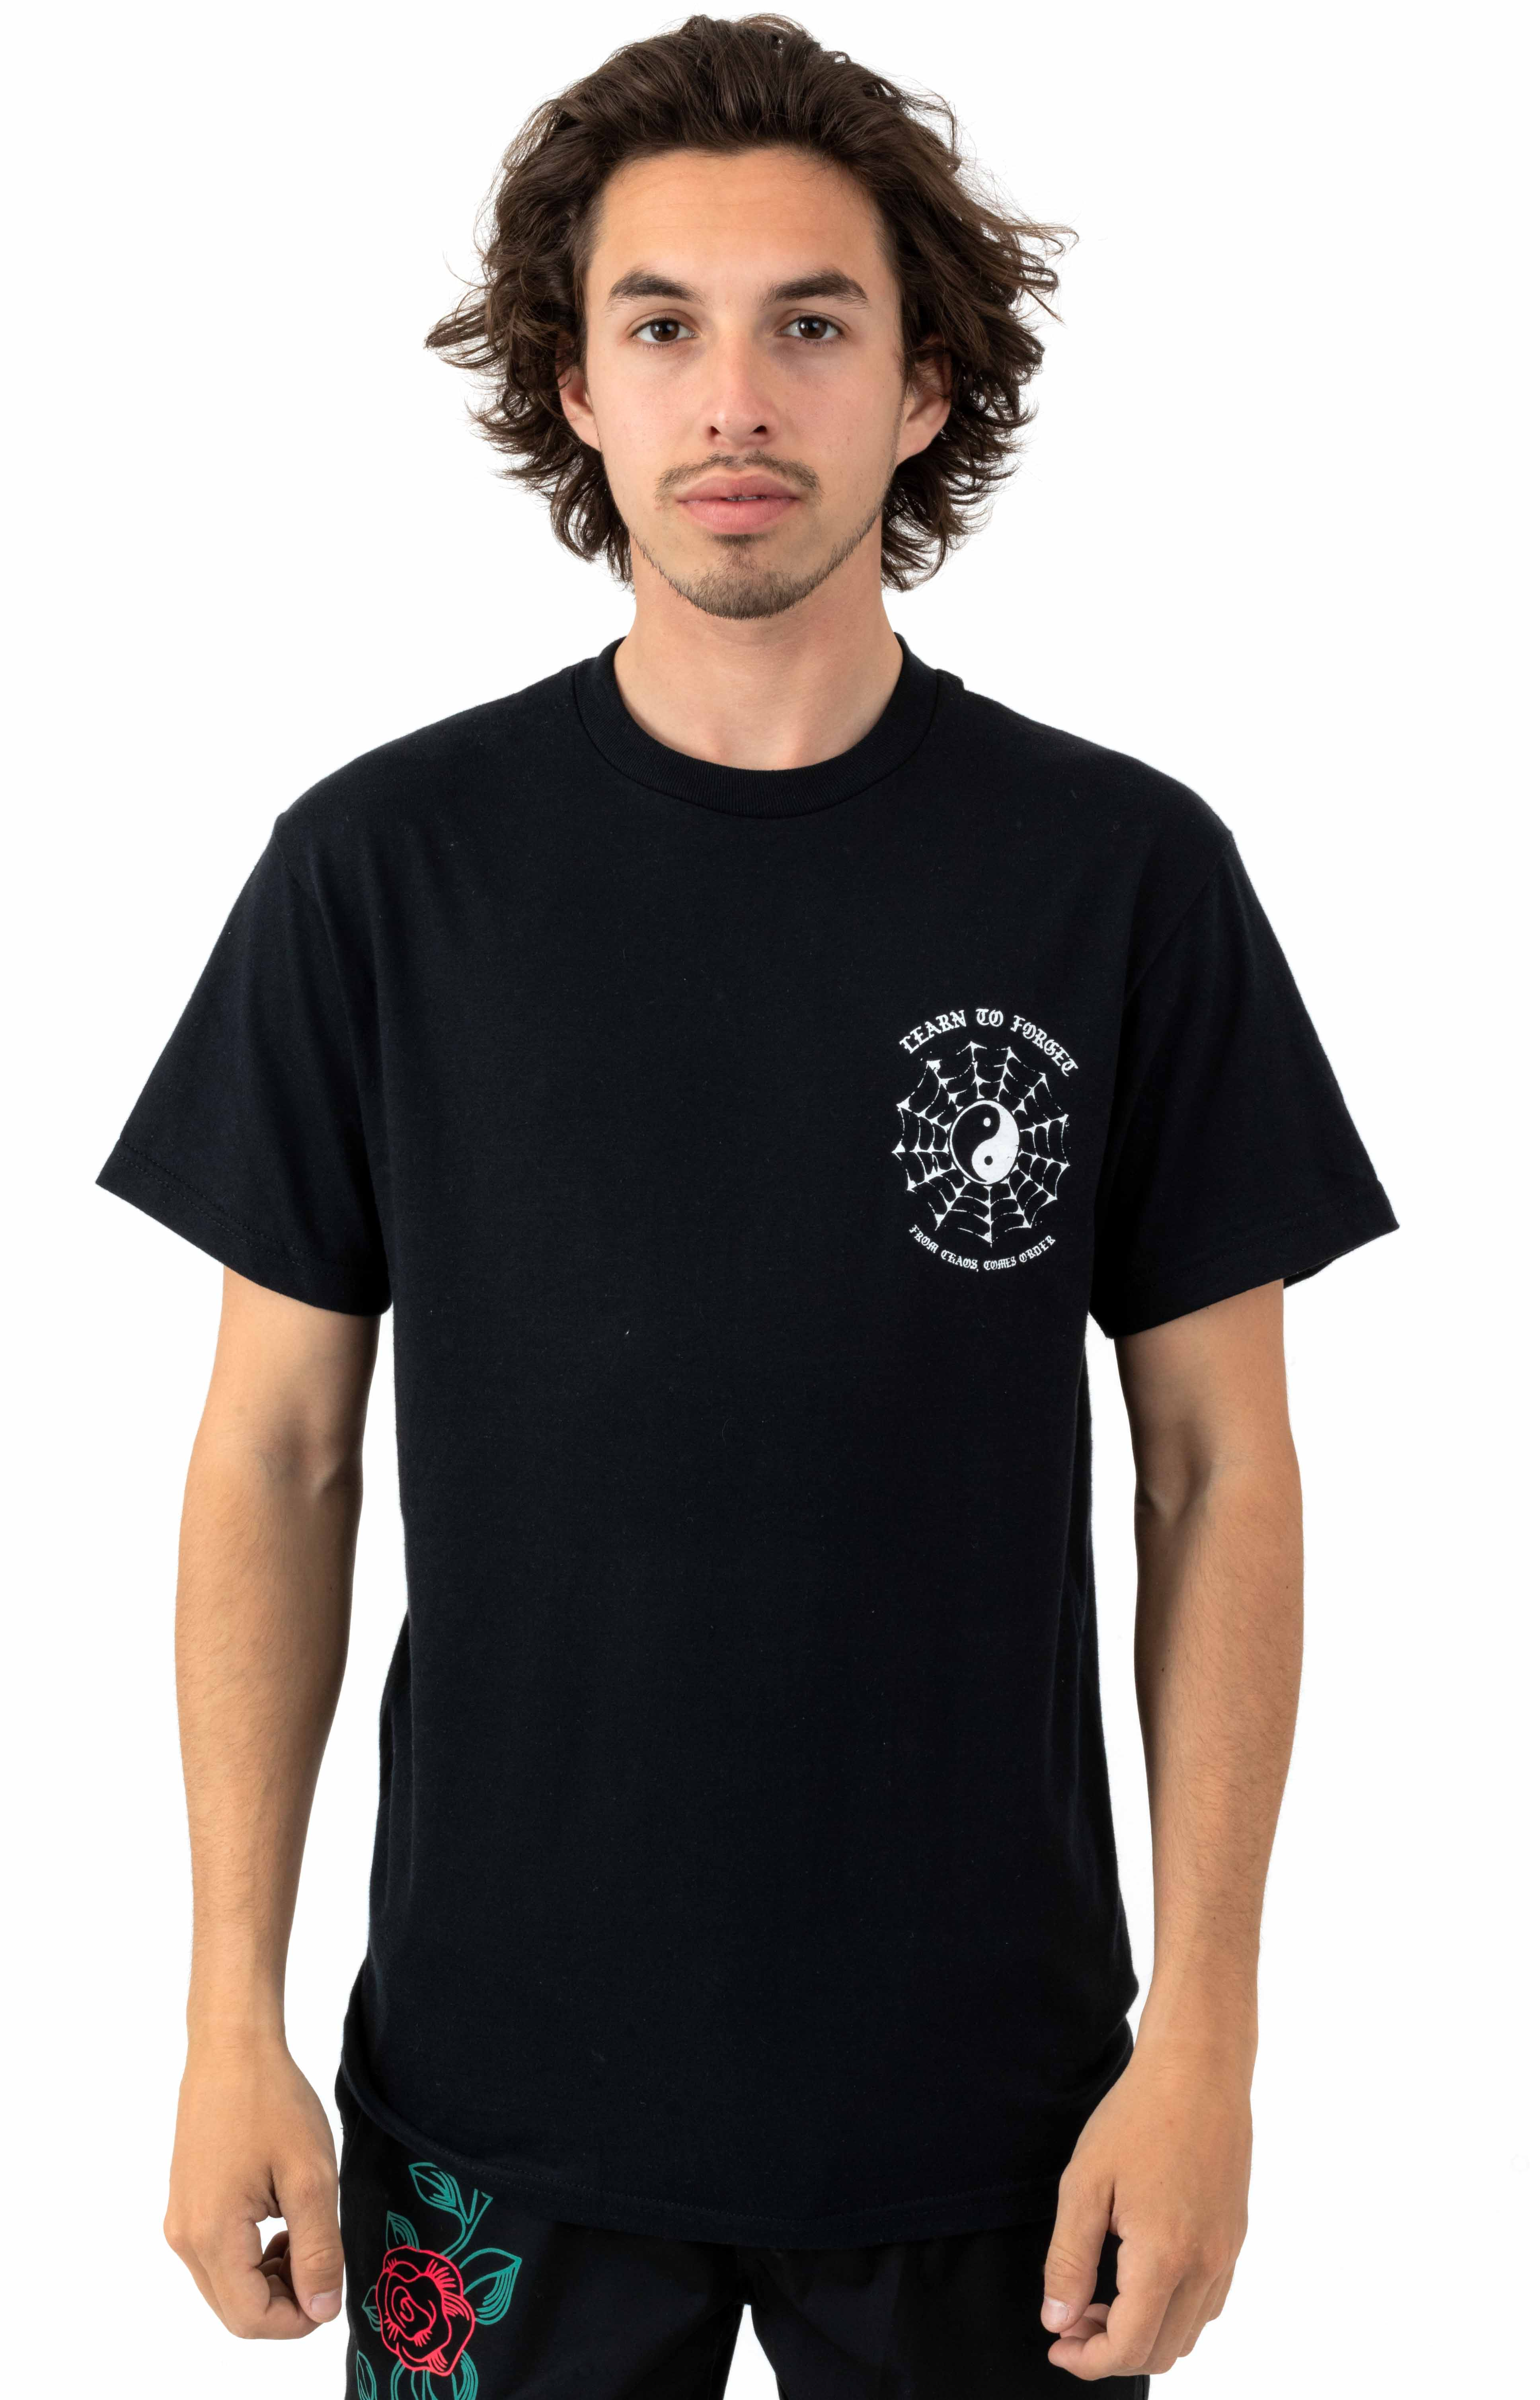 Web Of Lies T-Shirt - Black 2